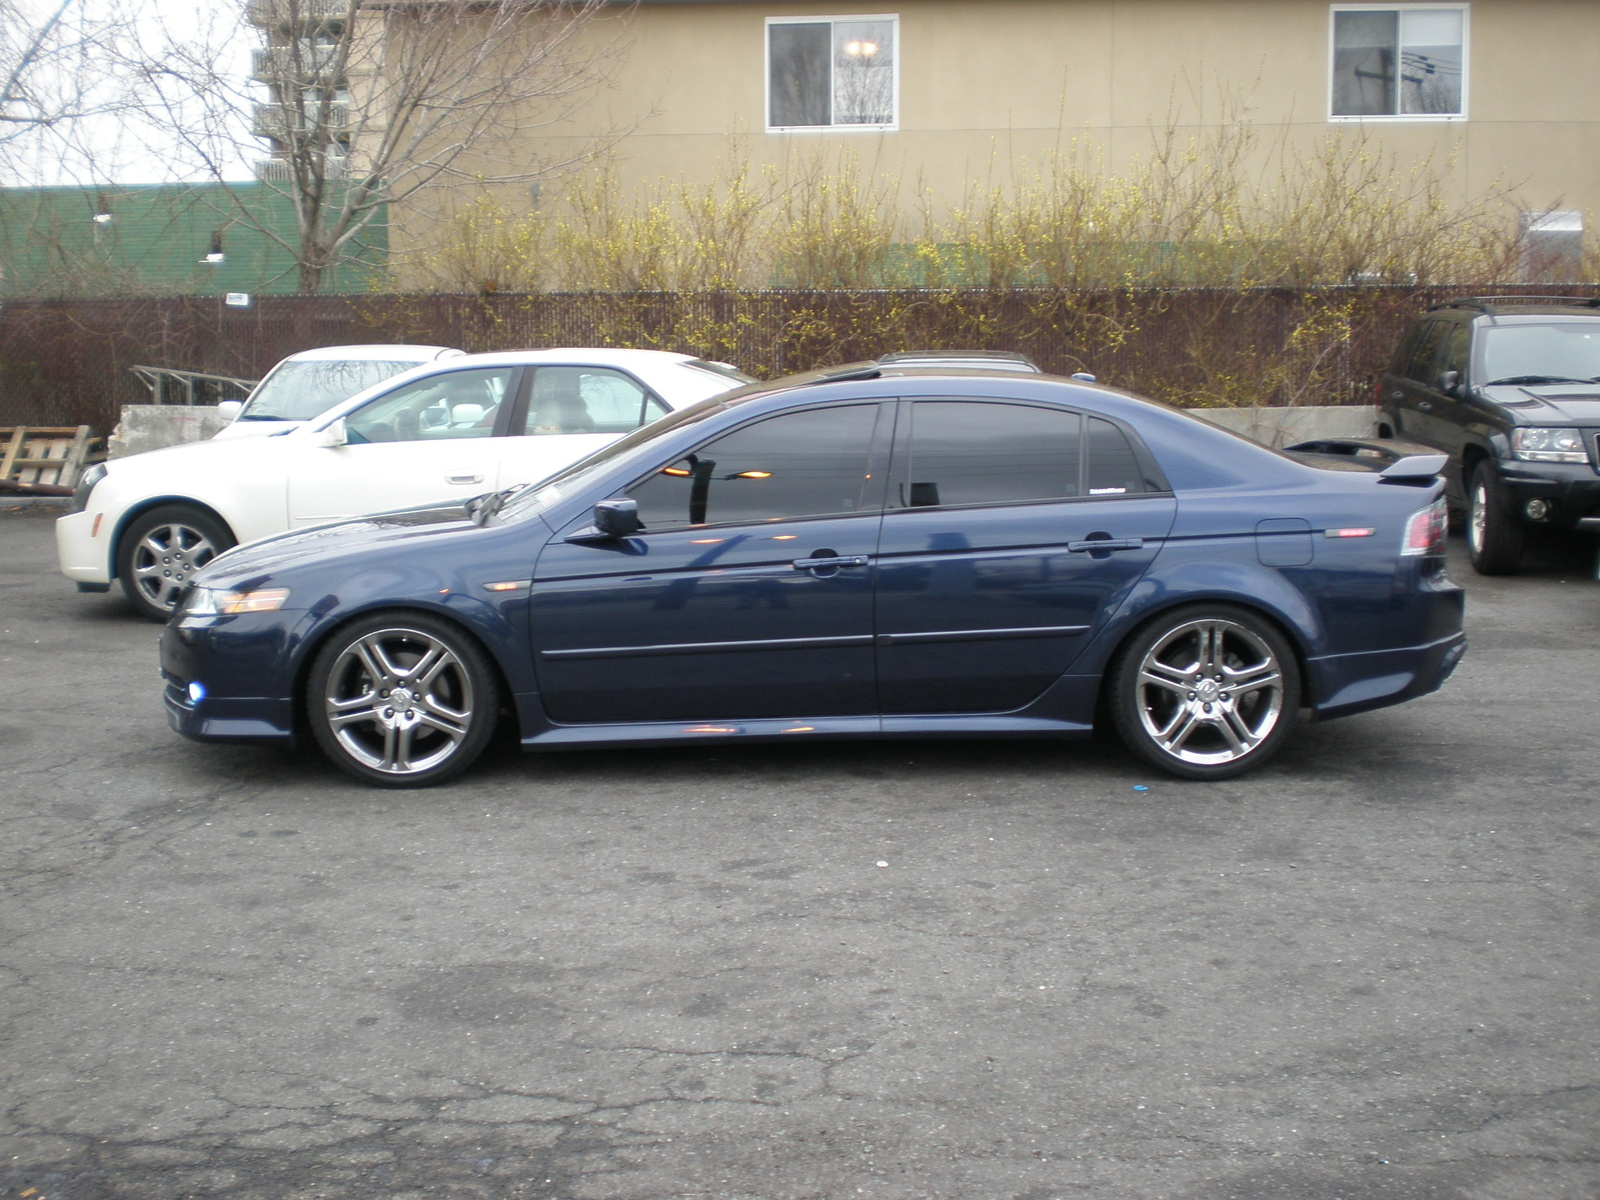 2004 acura tl information and photos zombiedrive 2004 acura tl manual transmission fluid 2004 acura tl manual transmission for sale